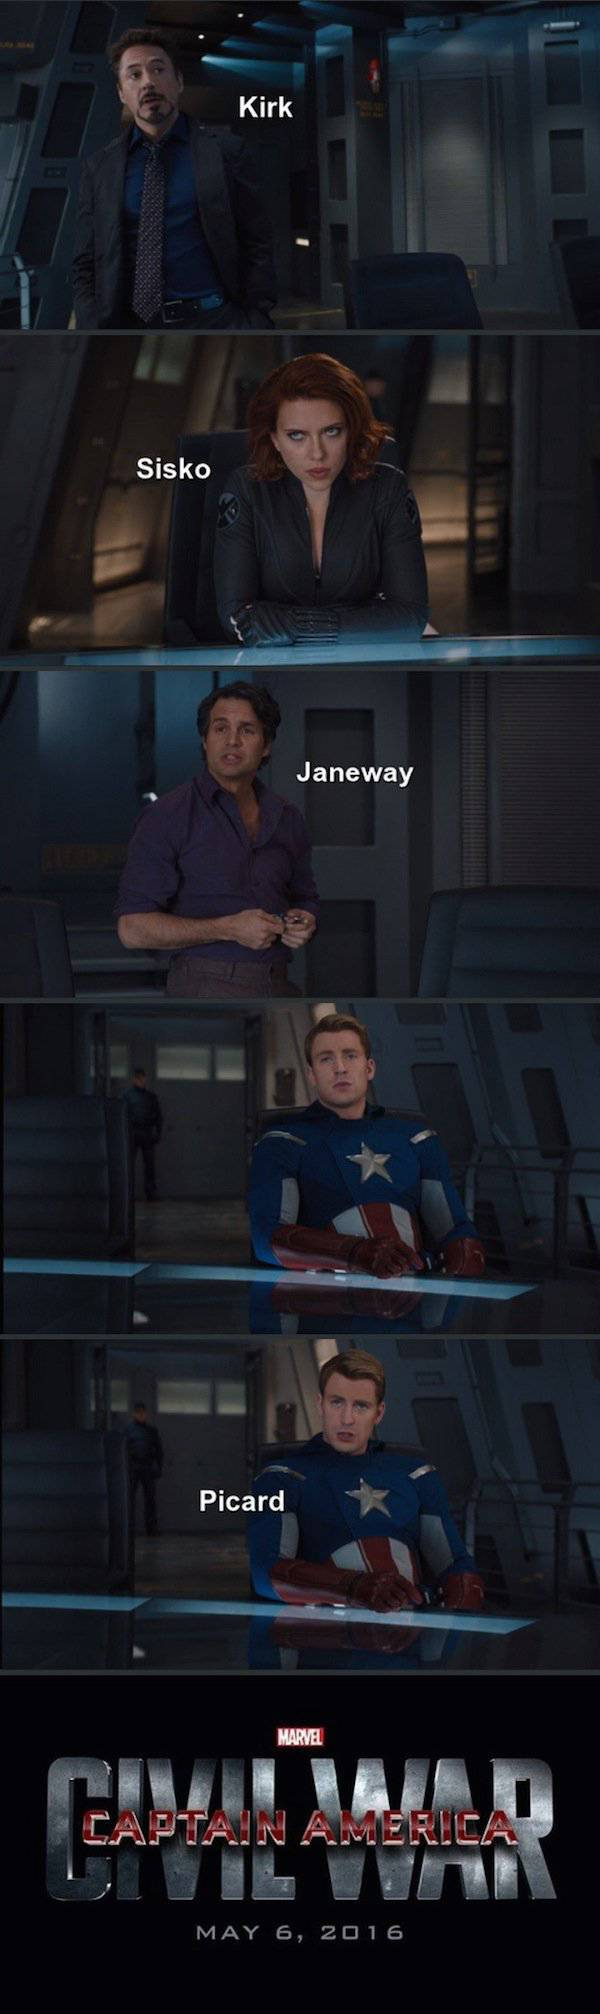 The Truth About Why Iron Man And Captain America Started A Civil War (18 pics)